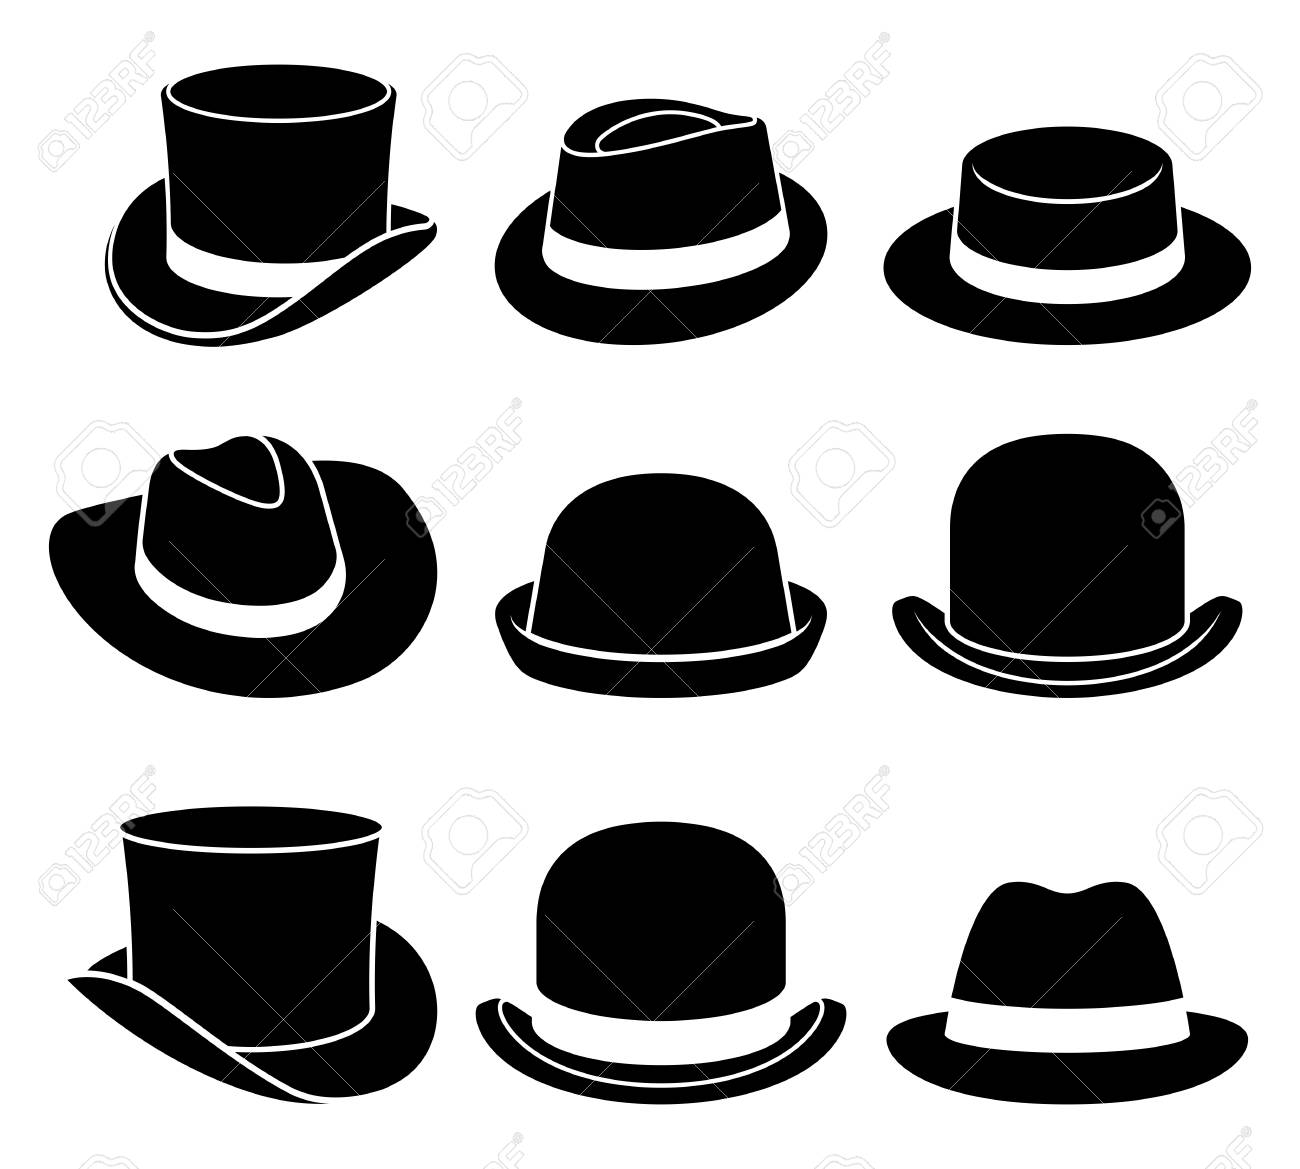 Vintage hats icons. Vector illustration. - 88034970